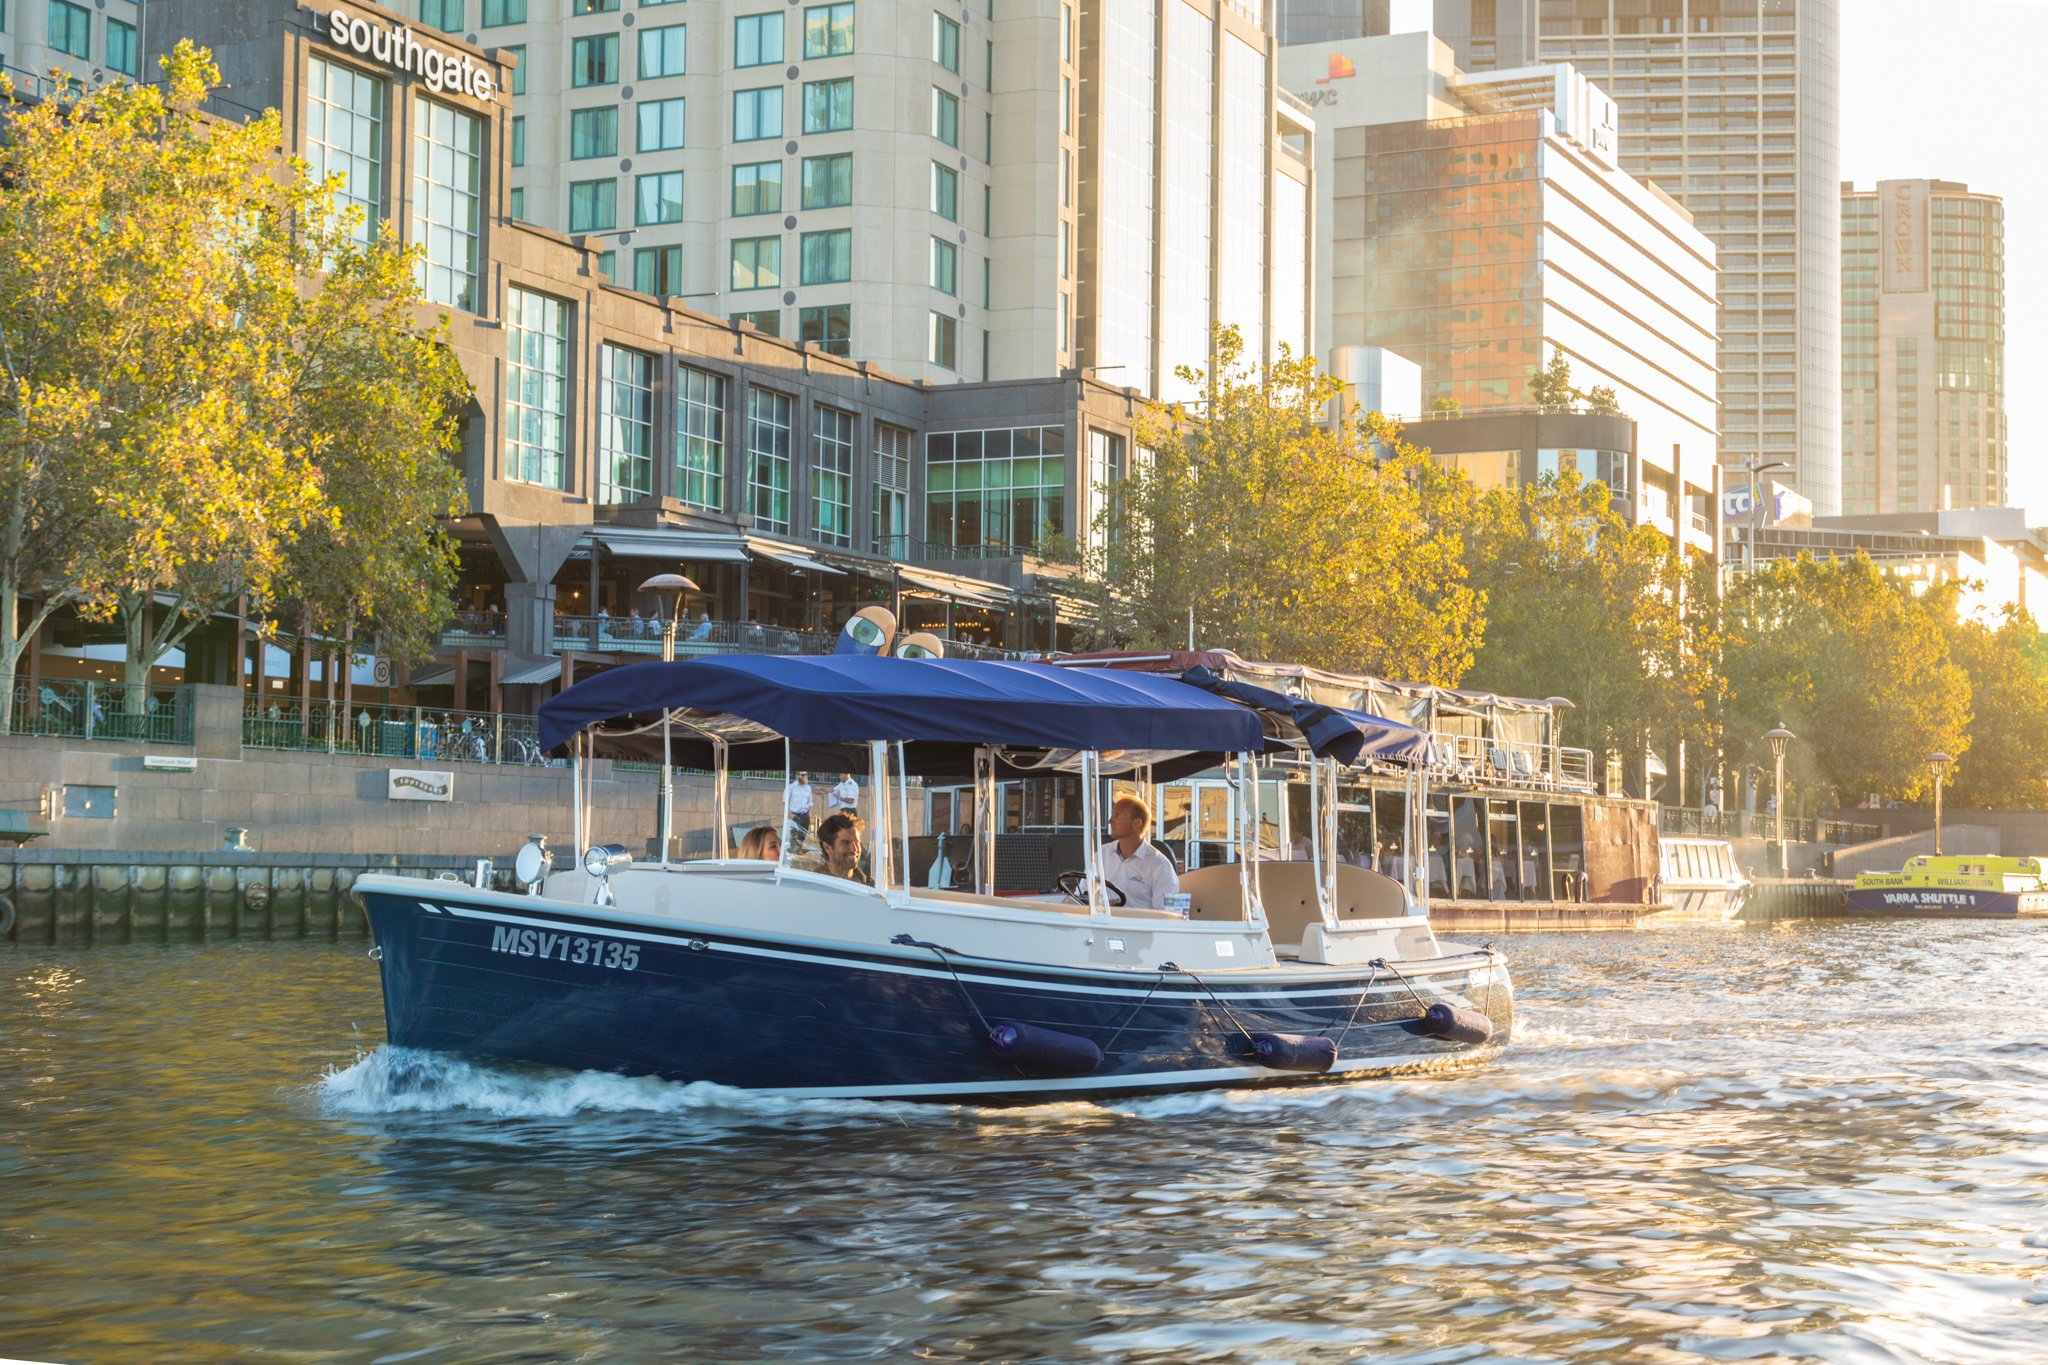 Engagement Cruises On The Yarra River Proposals With A Difference In Melbourne